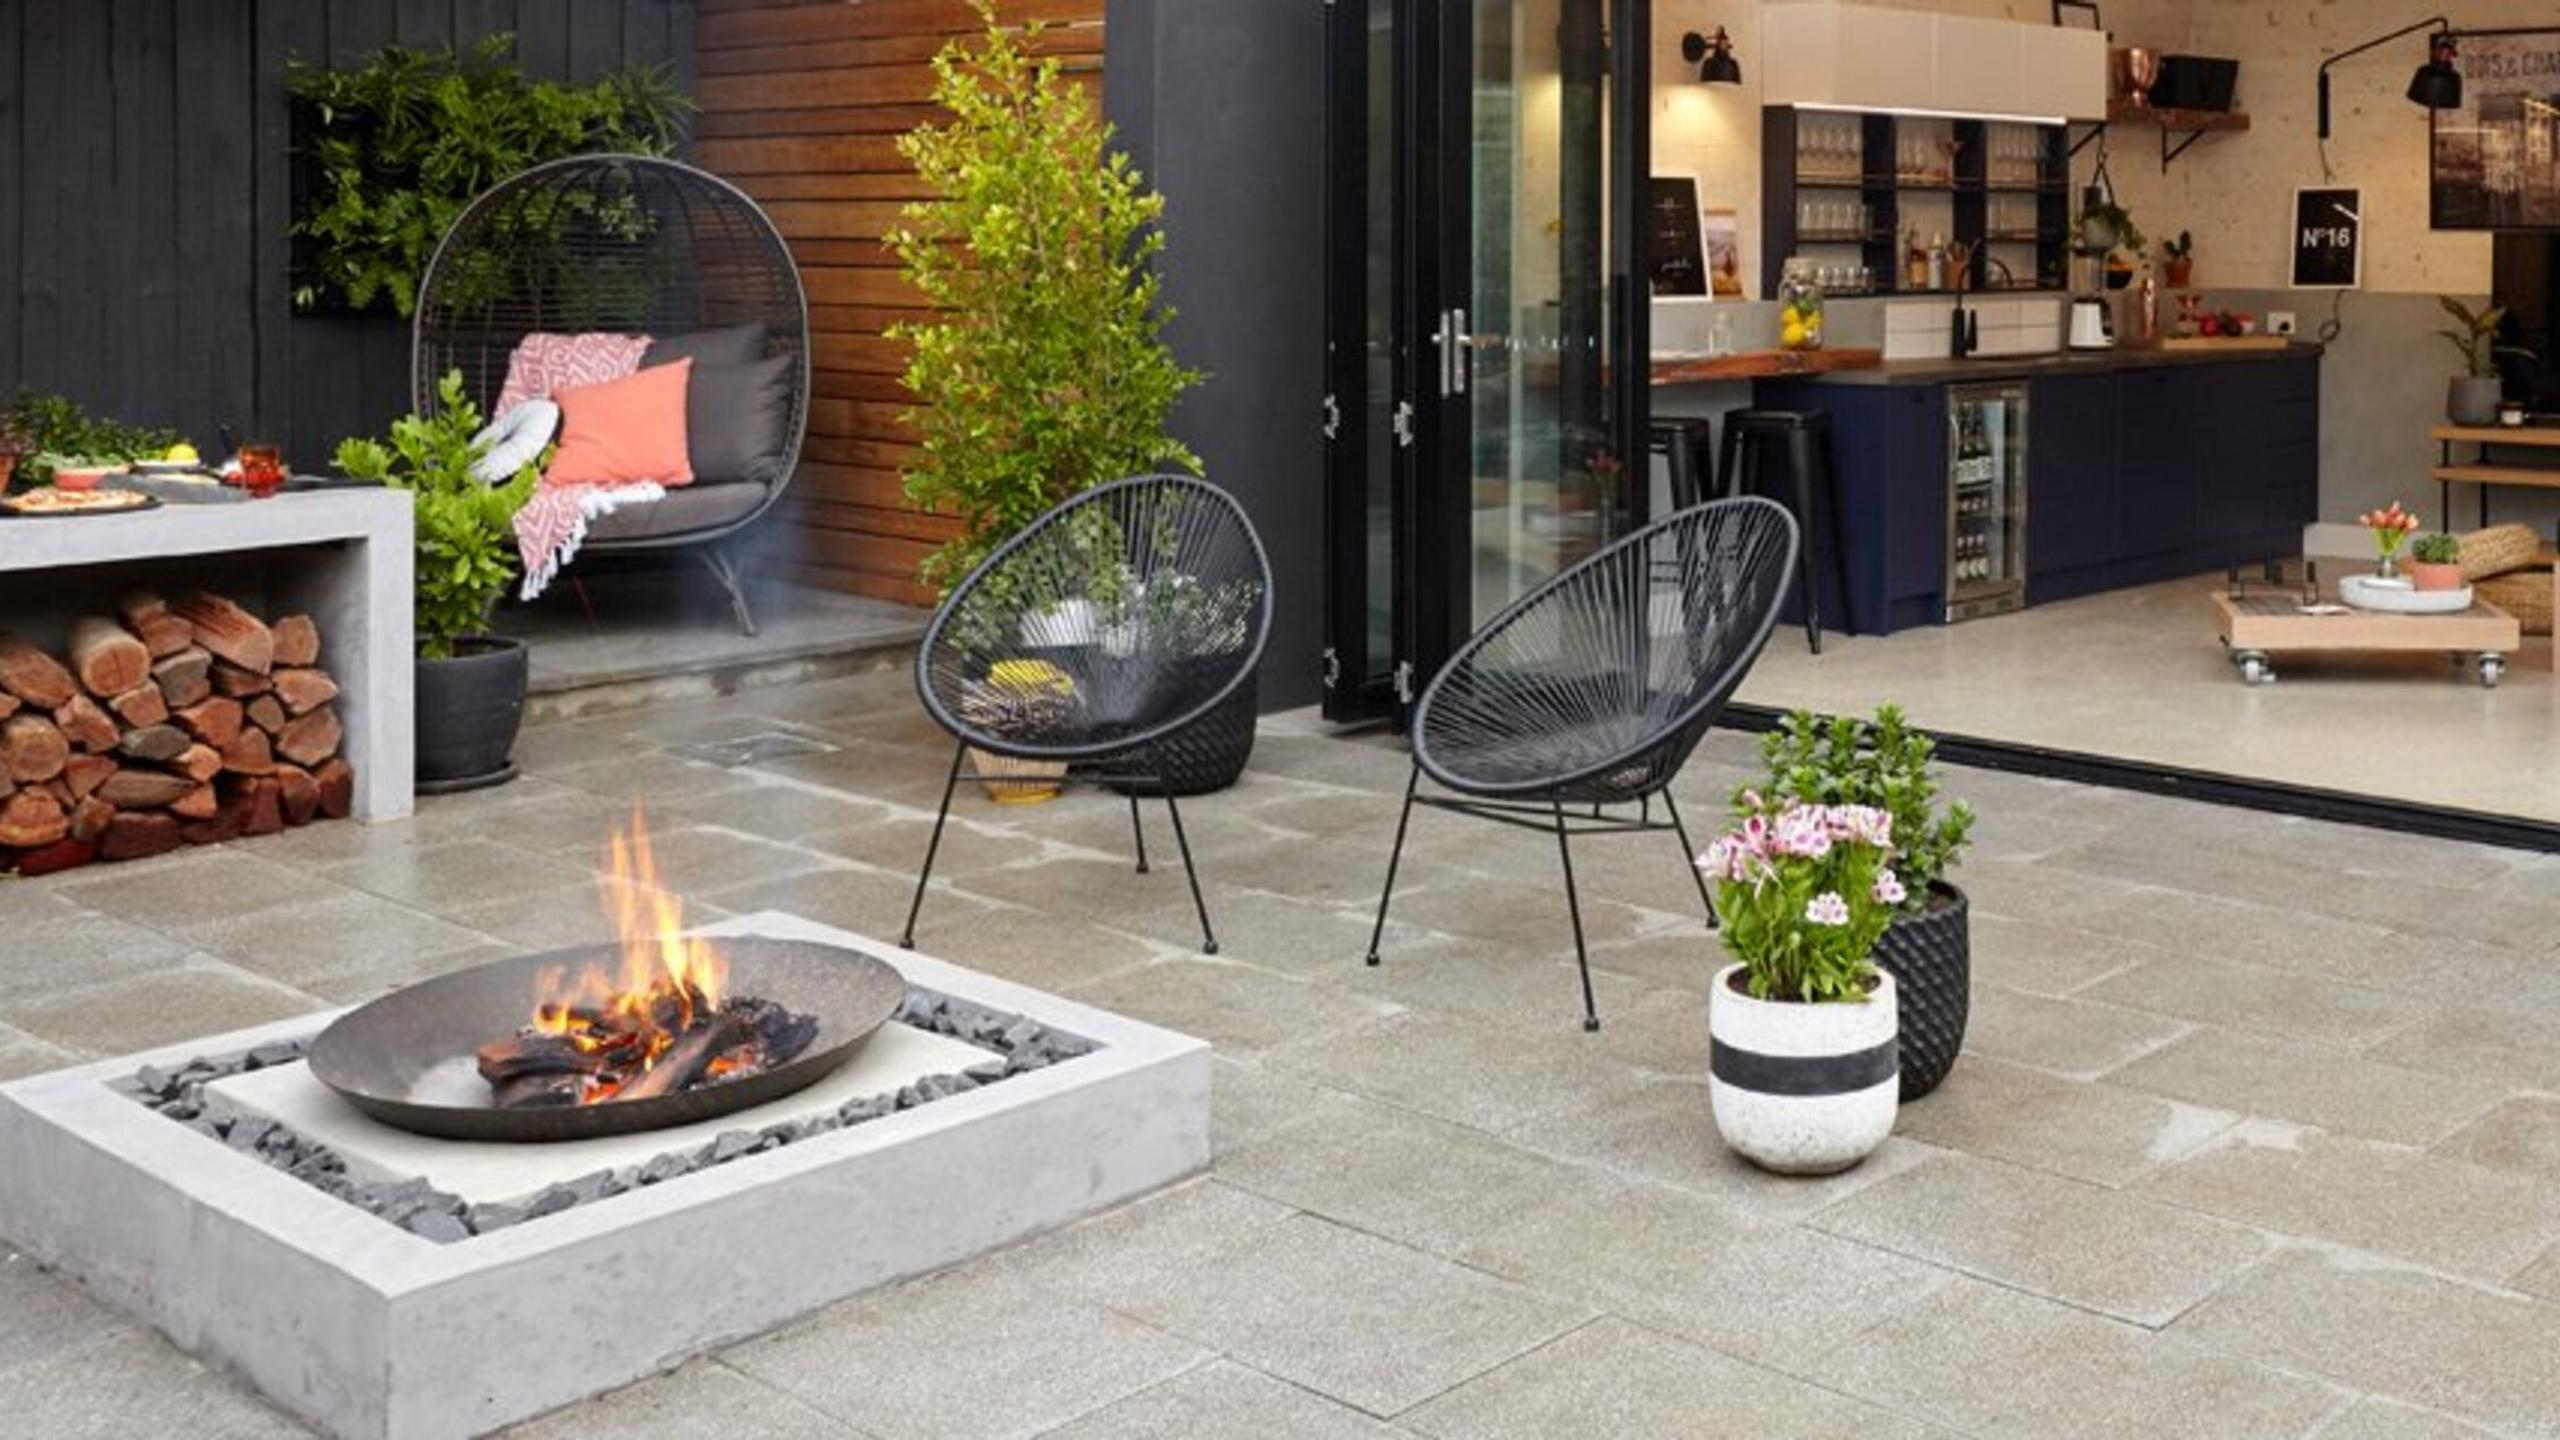 Outdoor area with lounge furniture and fire pit.